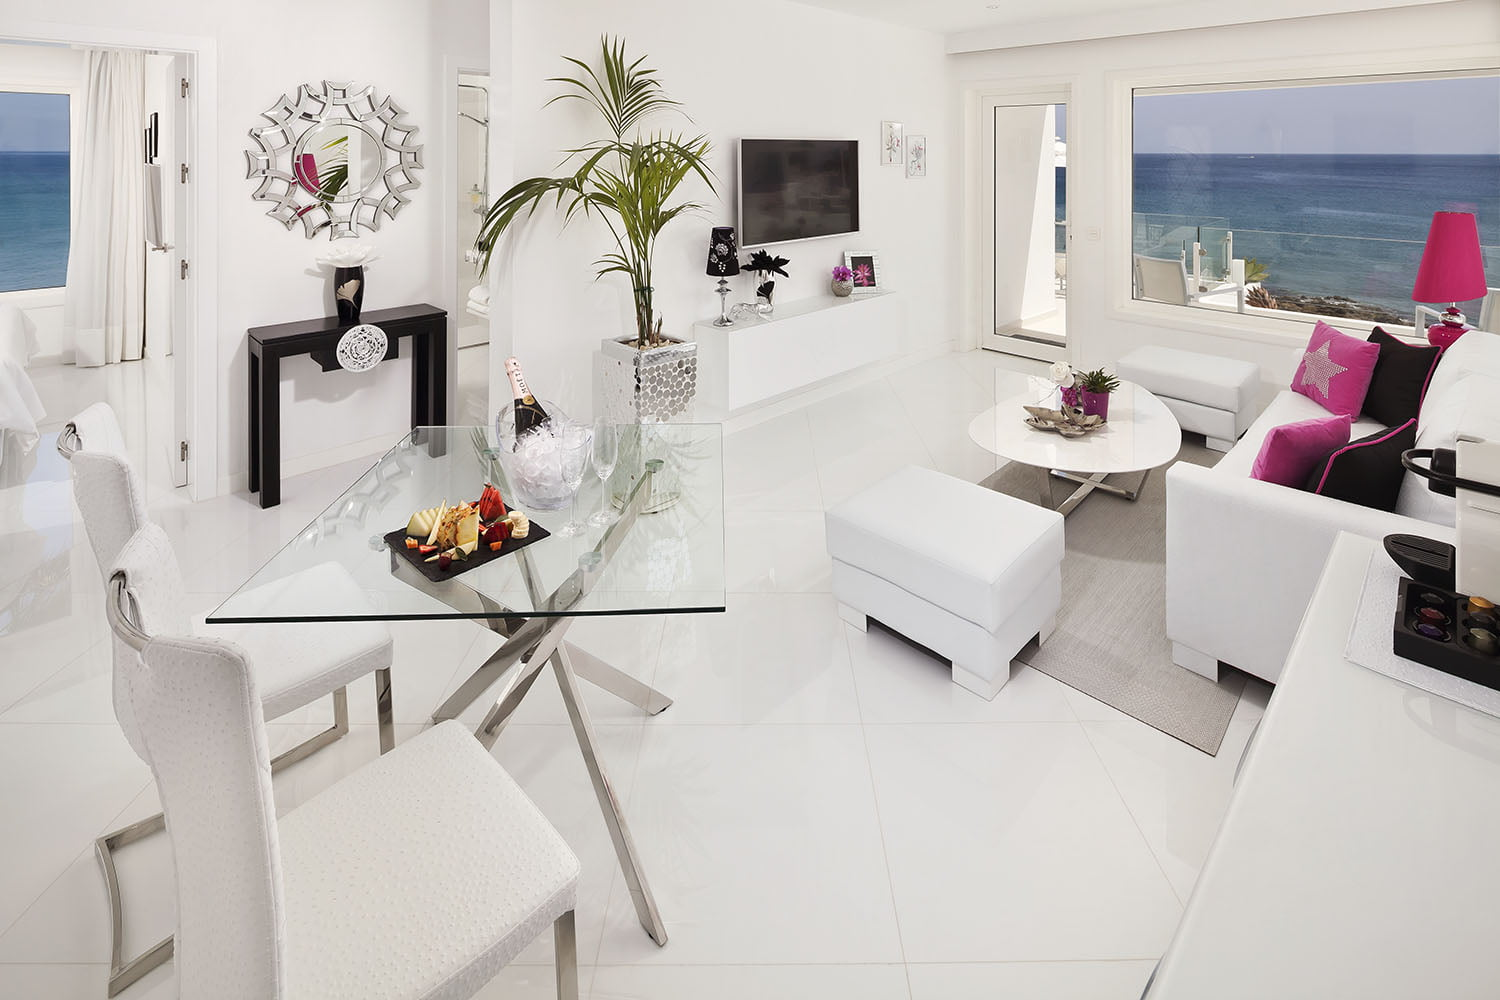 The lounge area of the exclusive Suite Lanis at Lani's Suites de Luxe in Puerto del Carmen